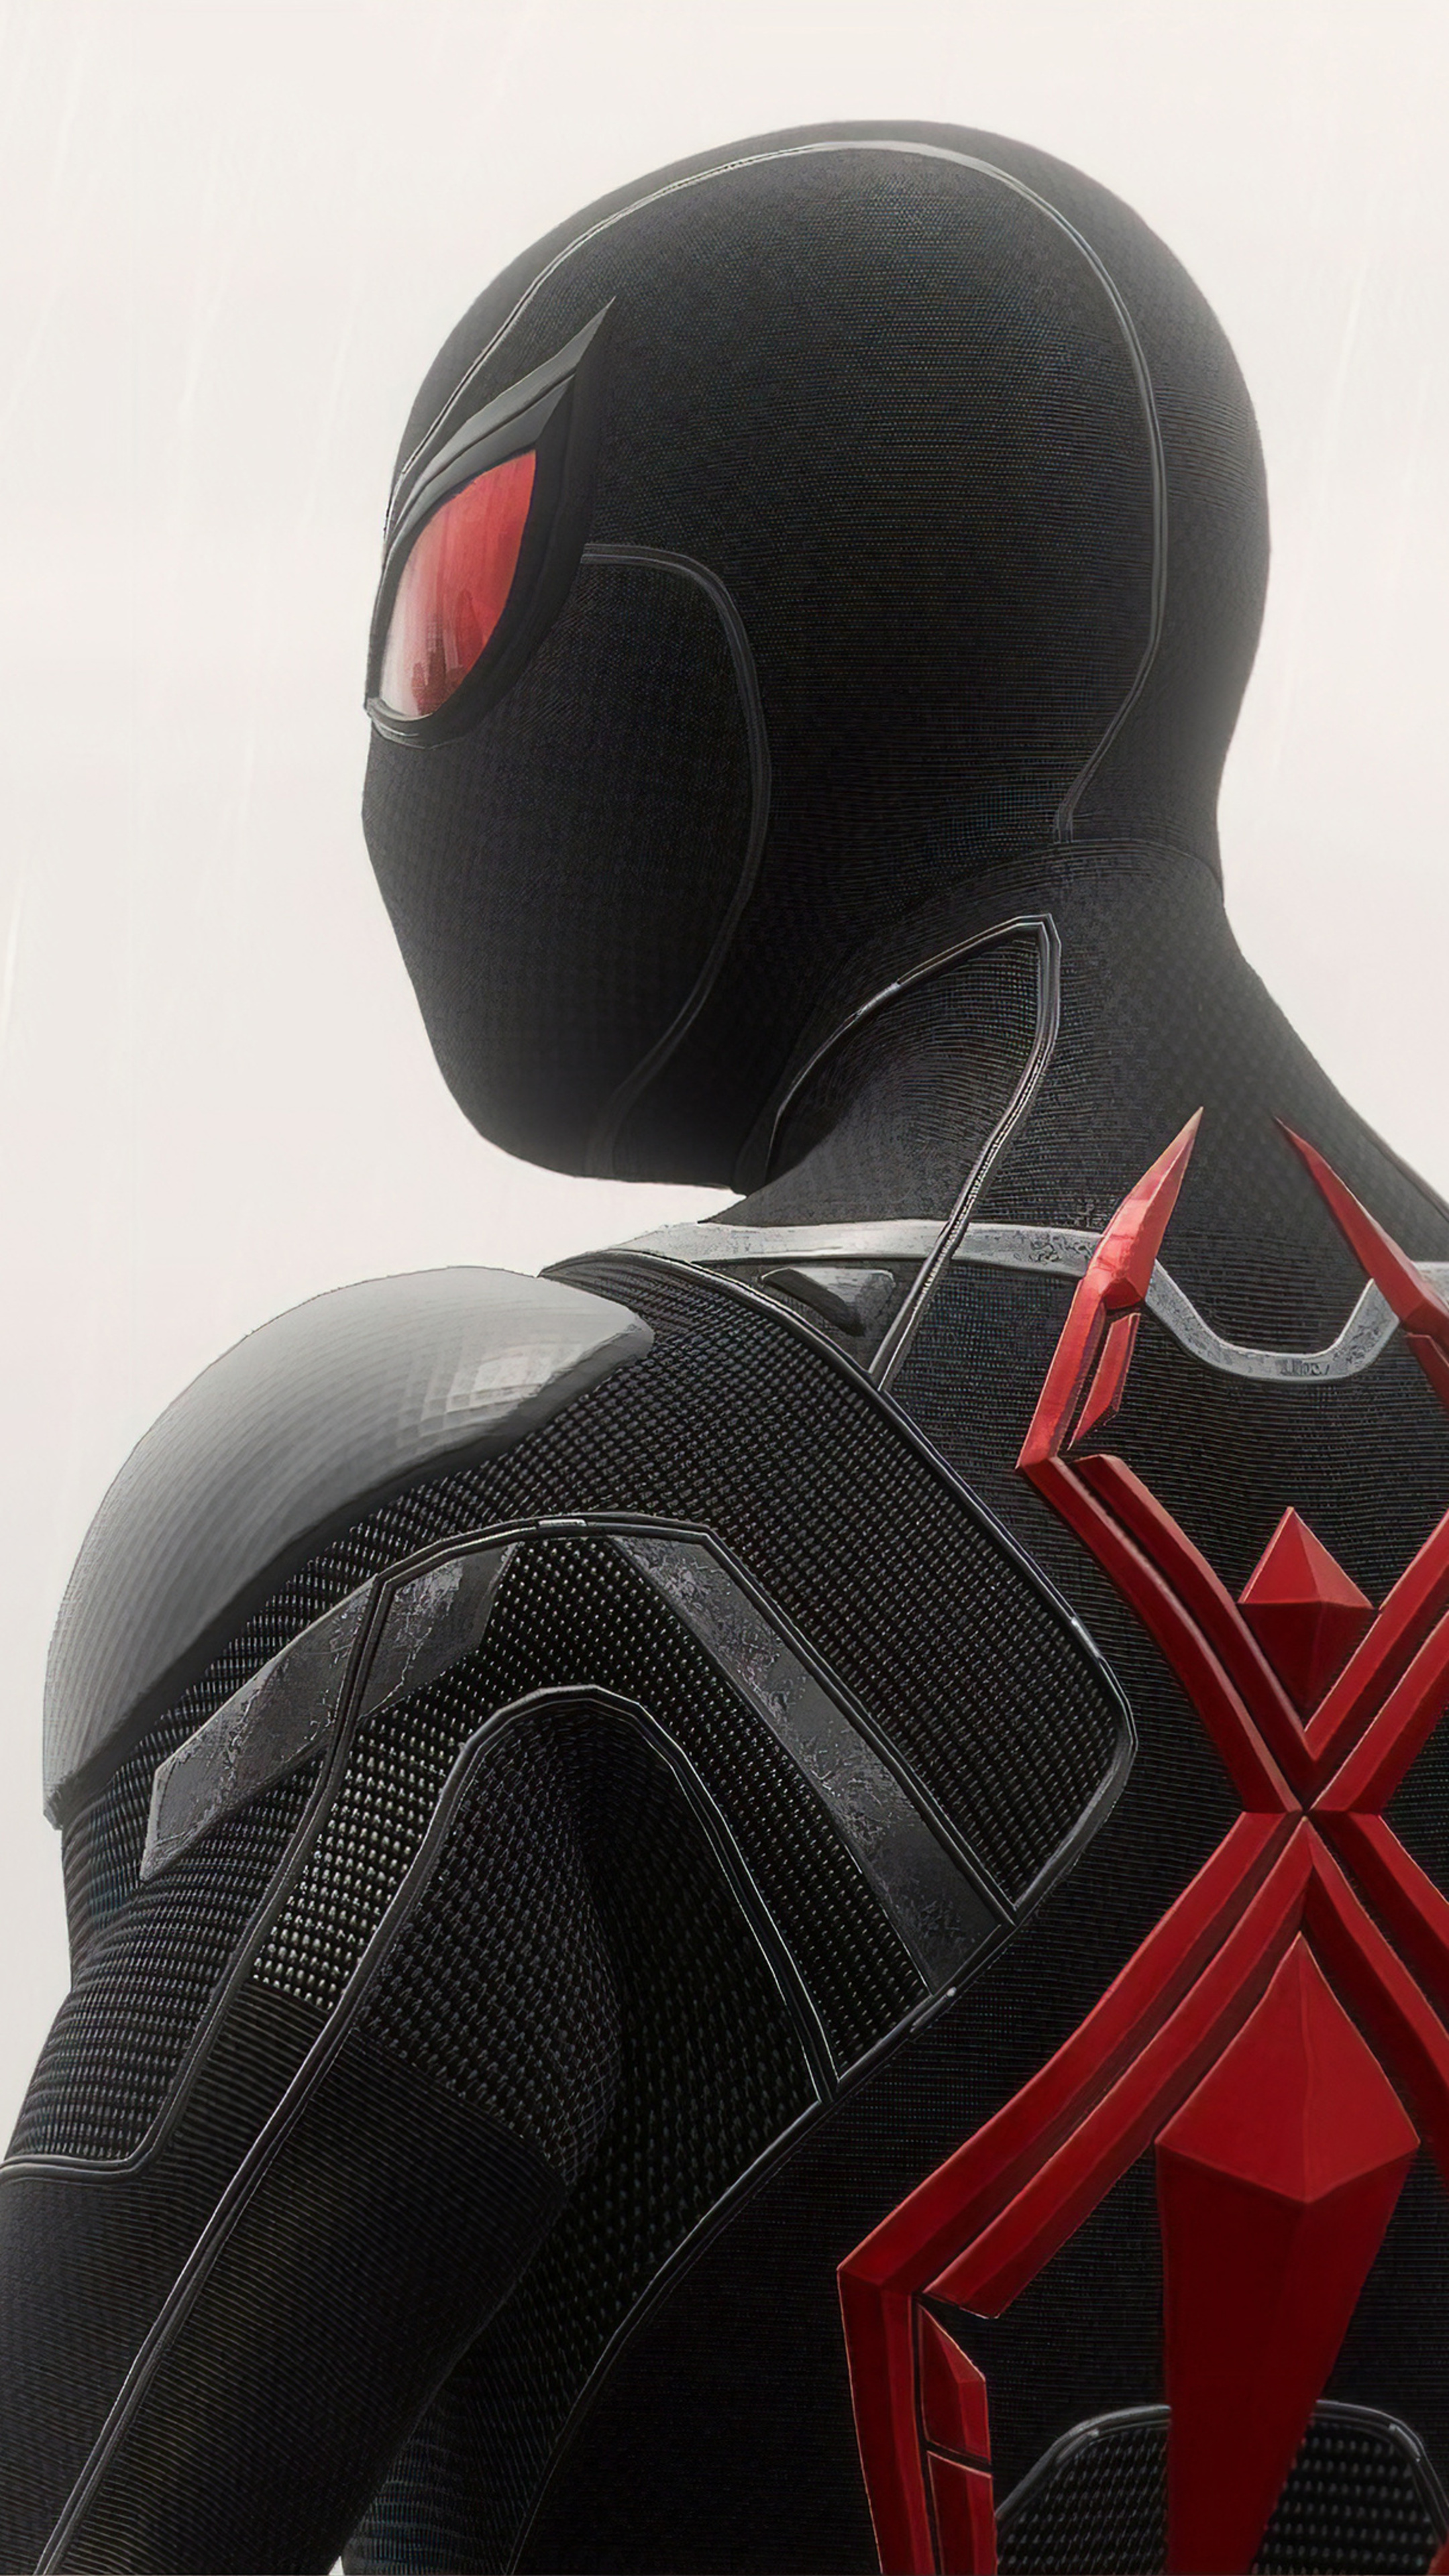 spiderman-black-and-red-suit-4k-0z.jpg